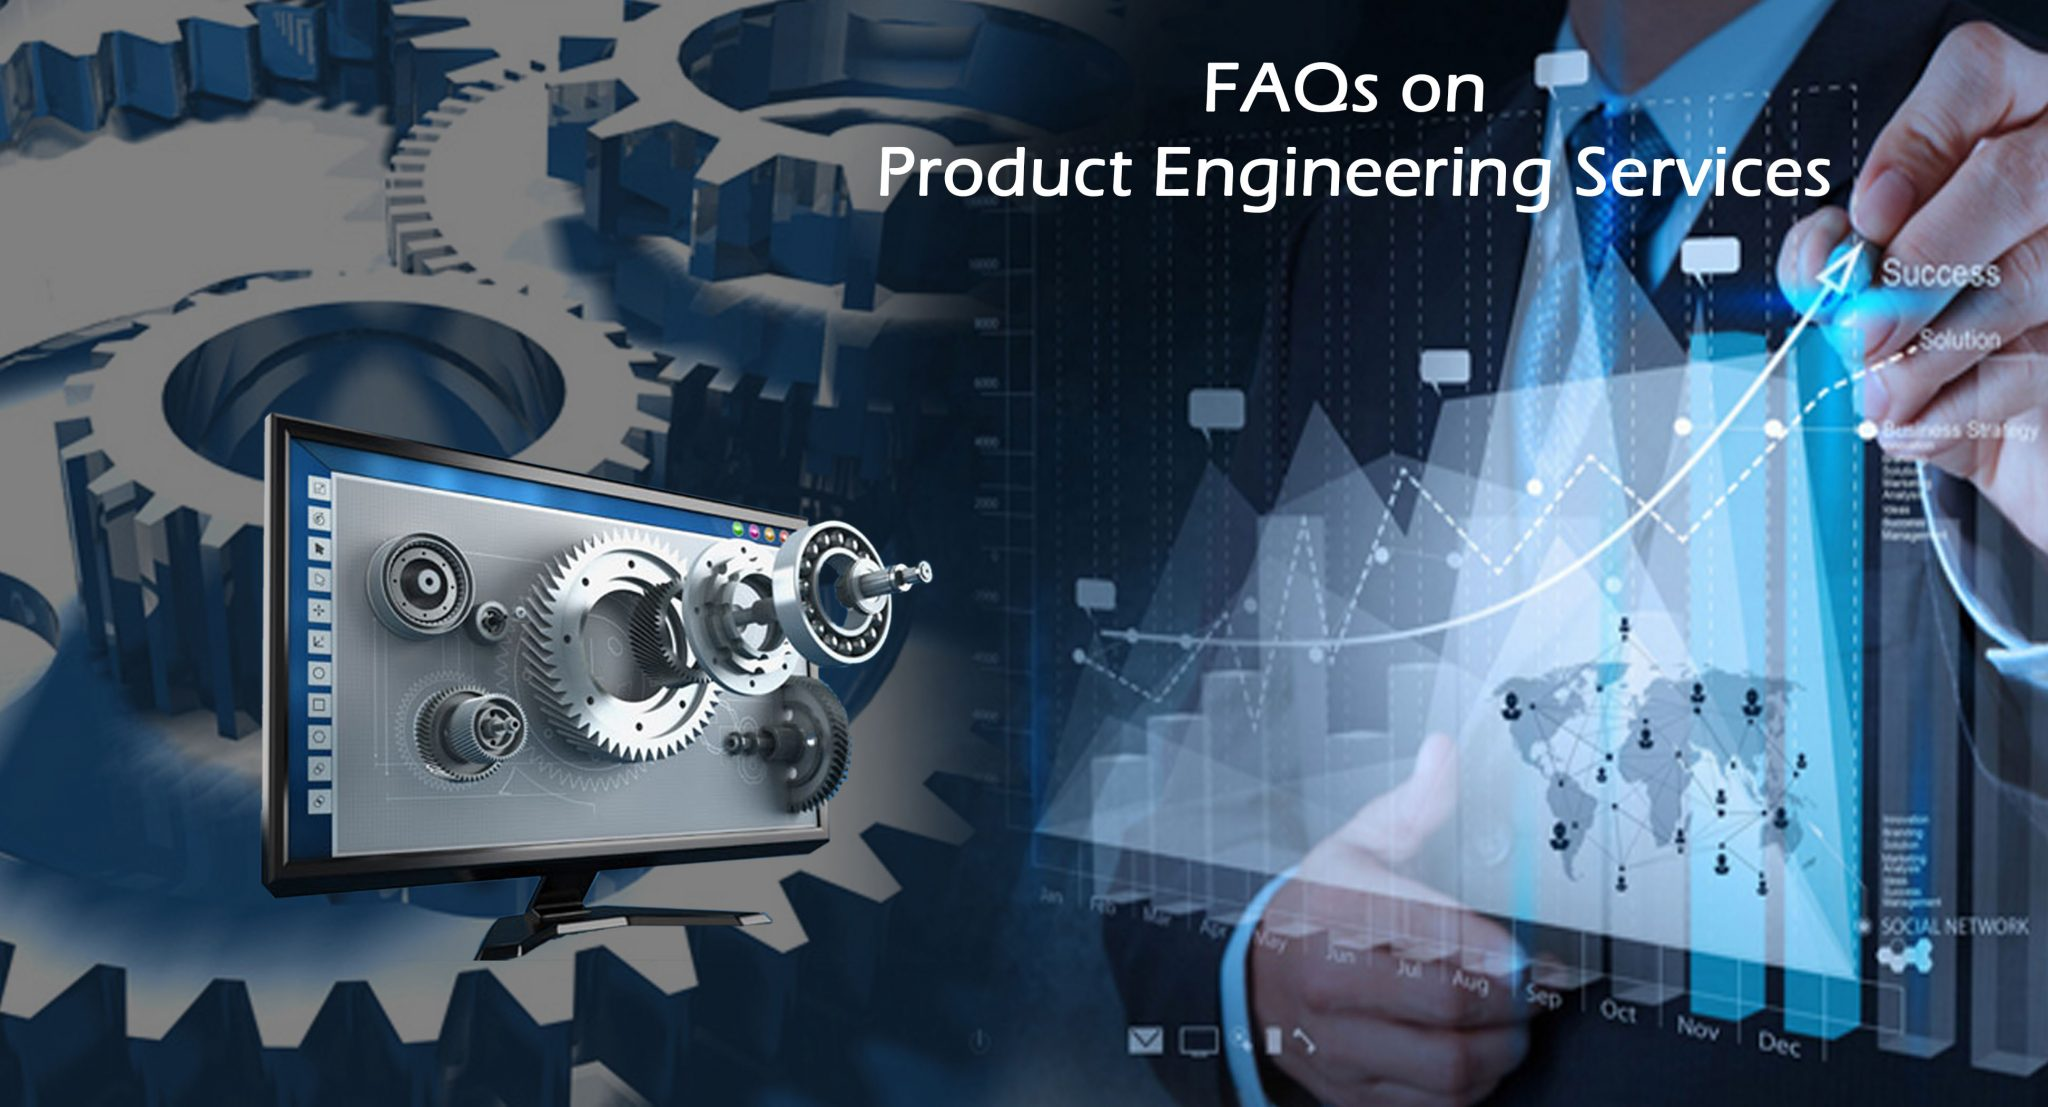 83467da371c Product Engineering Services (PES) FAQs